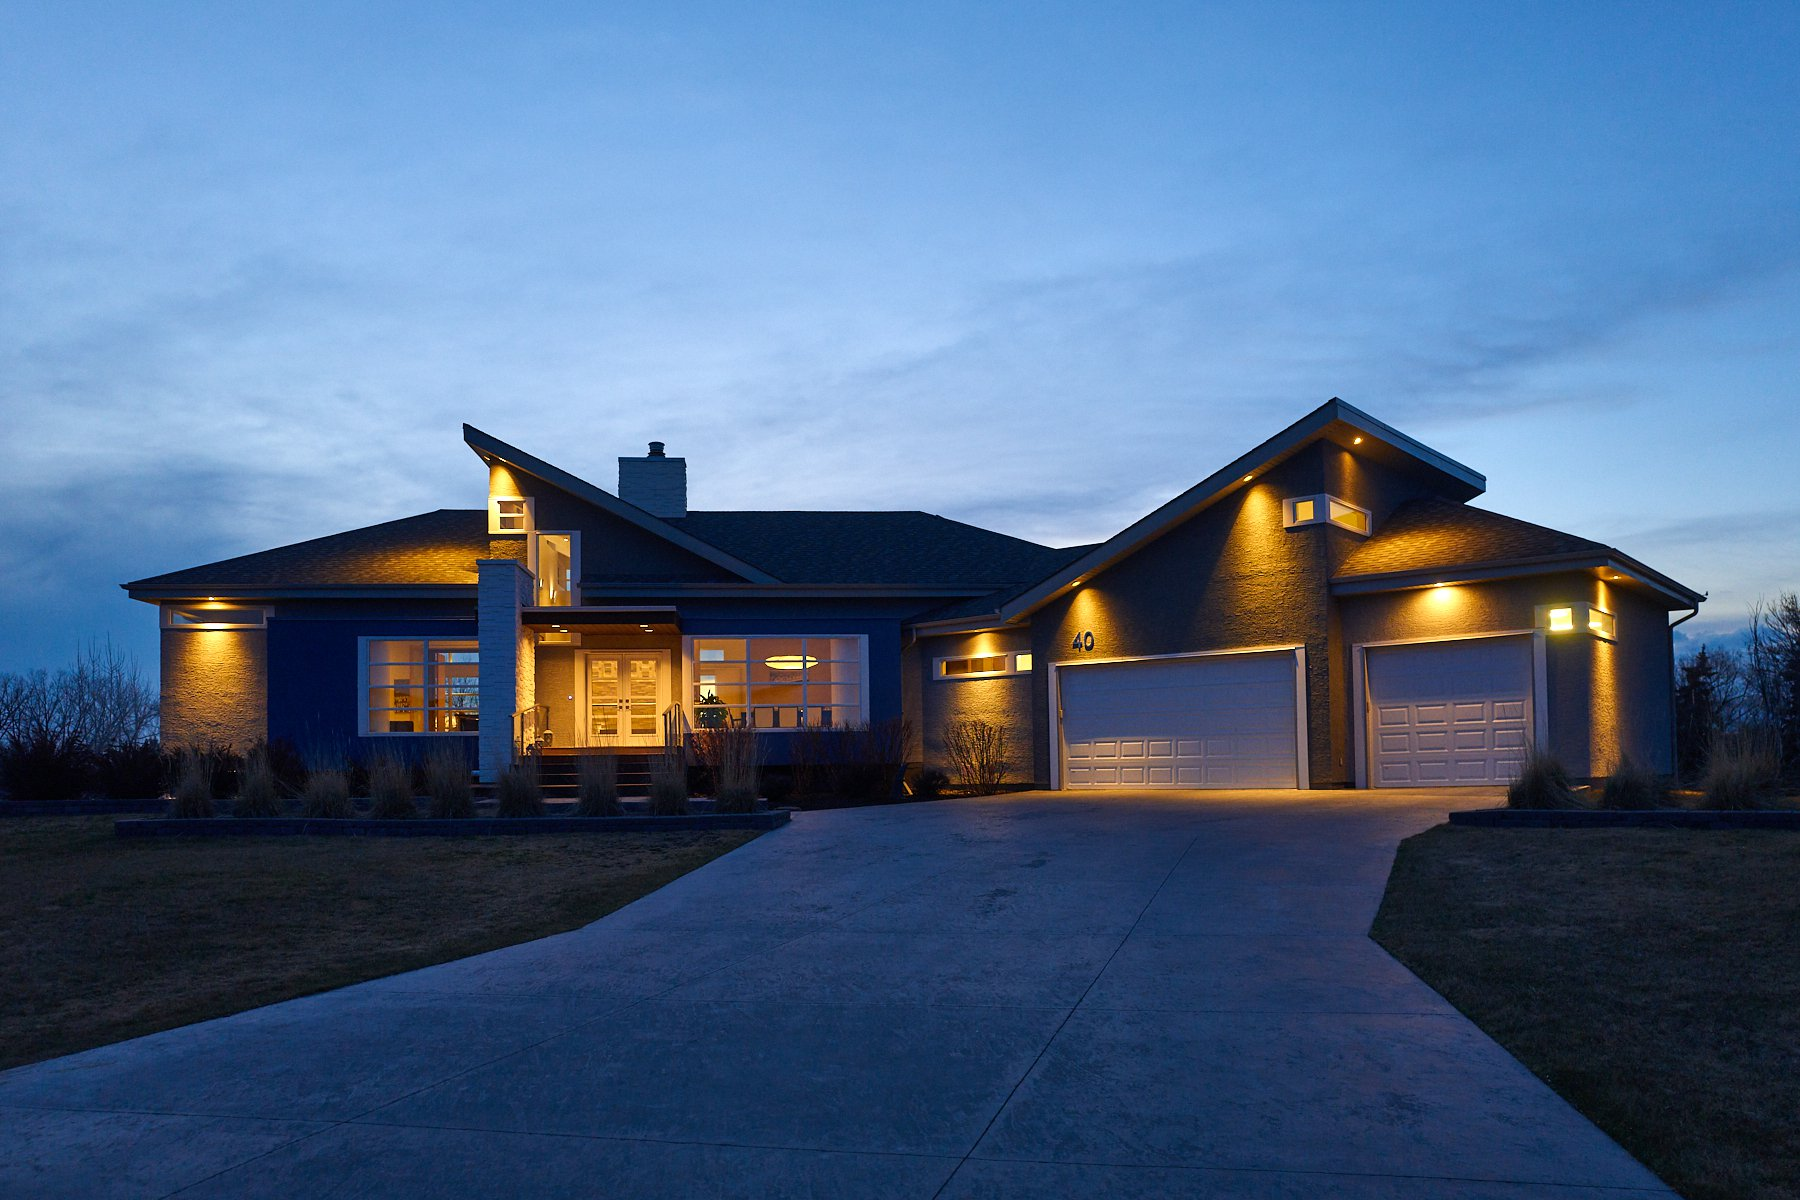 Main Photo: 40 Deer Pointe Drive in Headingley: Deer Pointe Single Family Detached for sale (1W)  : MLS®# 202008422